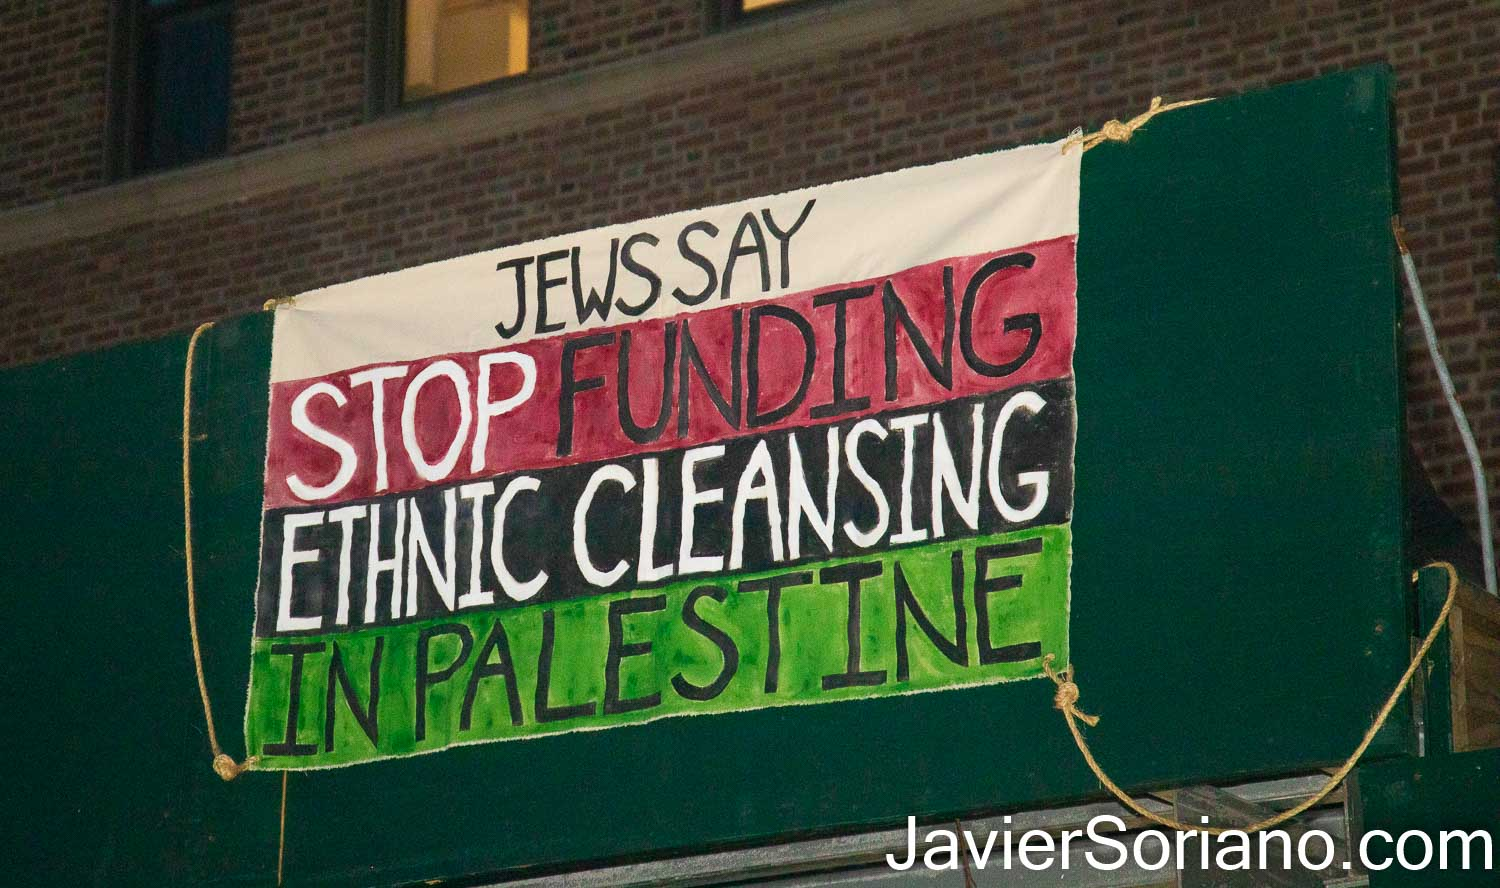 """Friday, May 21, 2021. New York City – Jews, Palestinians and other New Yorkers gathered at Grand Army Plaza in the borough of Brooklyn to stand in solidarity with Palestine. After the rally, demonstrators marched to the building of the United States Senator Charles Ellis Schumer. The luxury building is in front of Prospect Park. Protesters hung a banner in front of the senator's building that reads: """"Jews say stop funding ethnic cleansing in Palestine."""" Photo by Javier Soriano/www.JavierSoriano.com"""